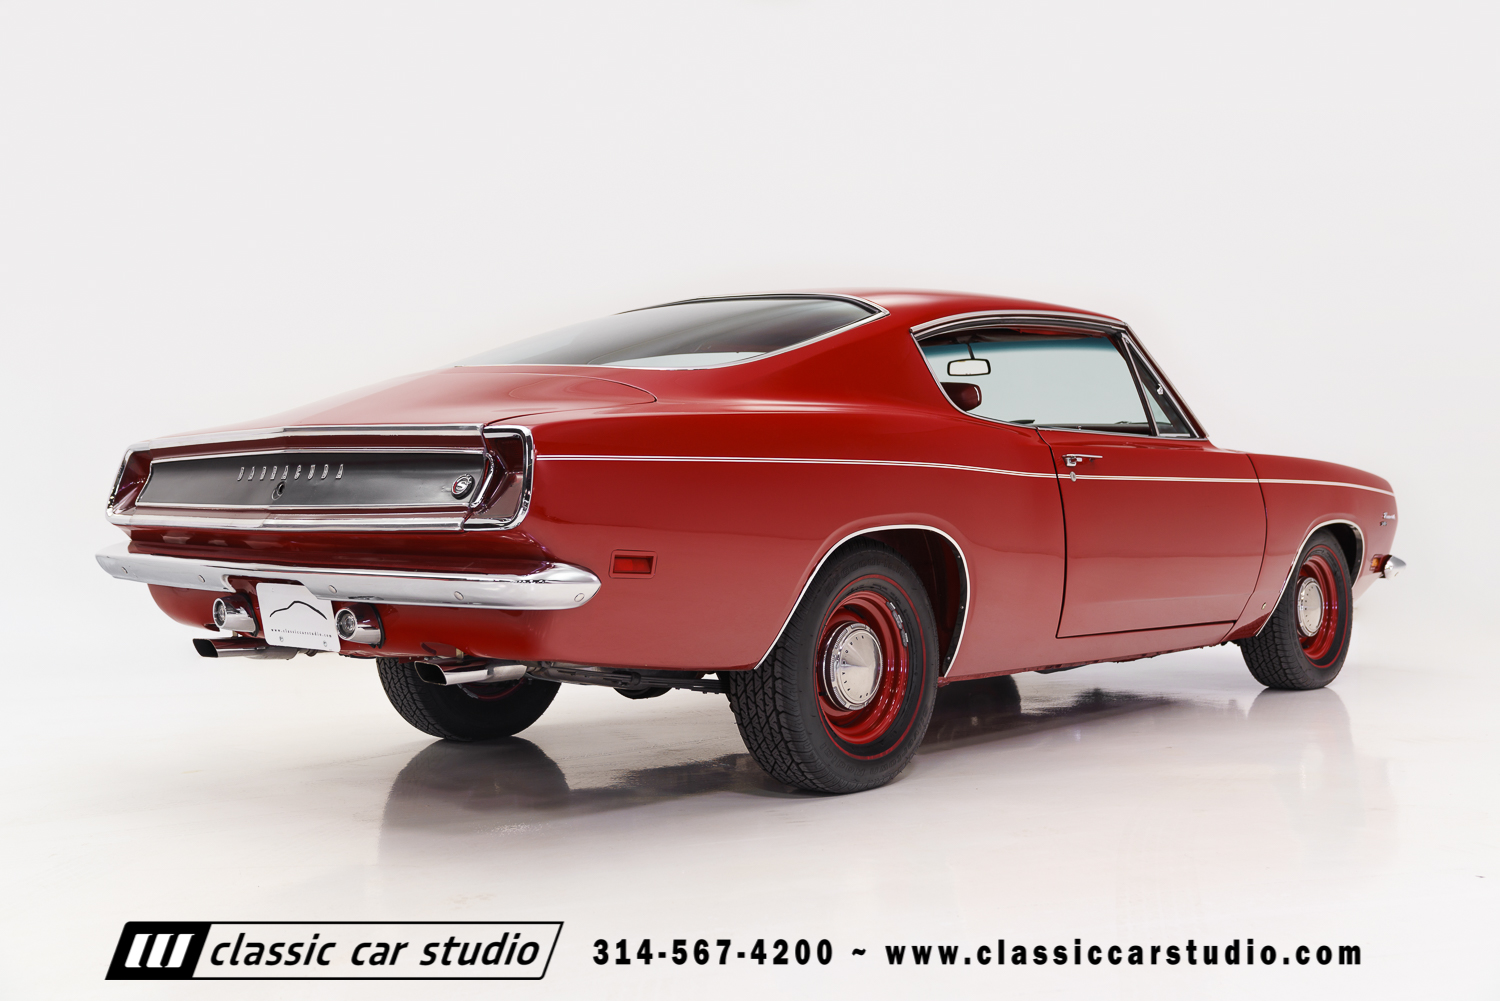 1969 Plymouth Barracuda Classic Car Studio